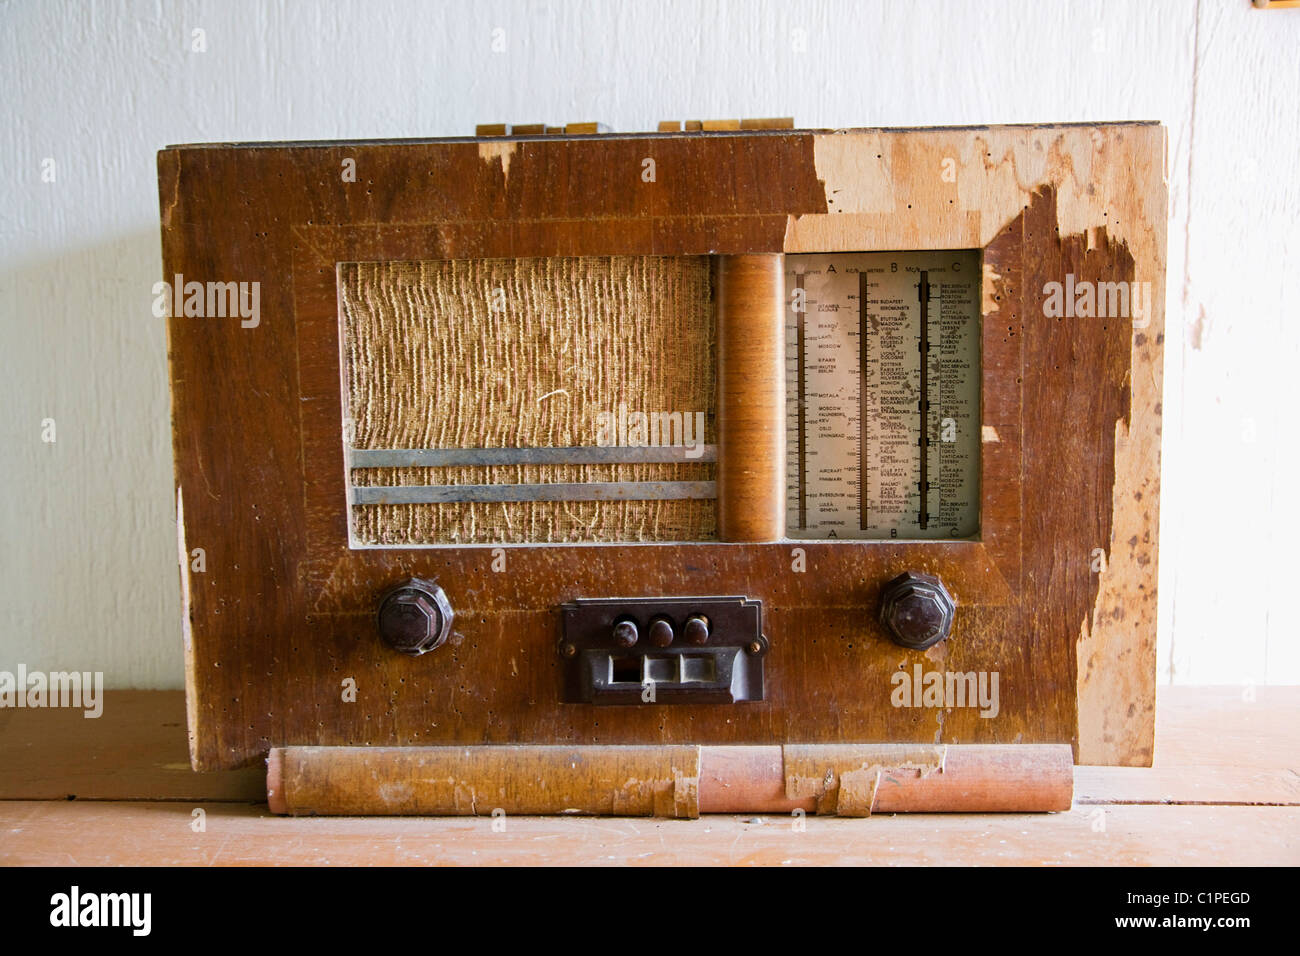 Republic of Ireland, County Sligo, Sligo folk Park, old radio - Stock Image